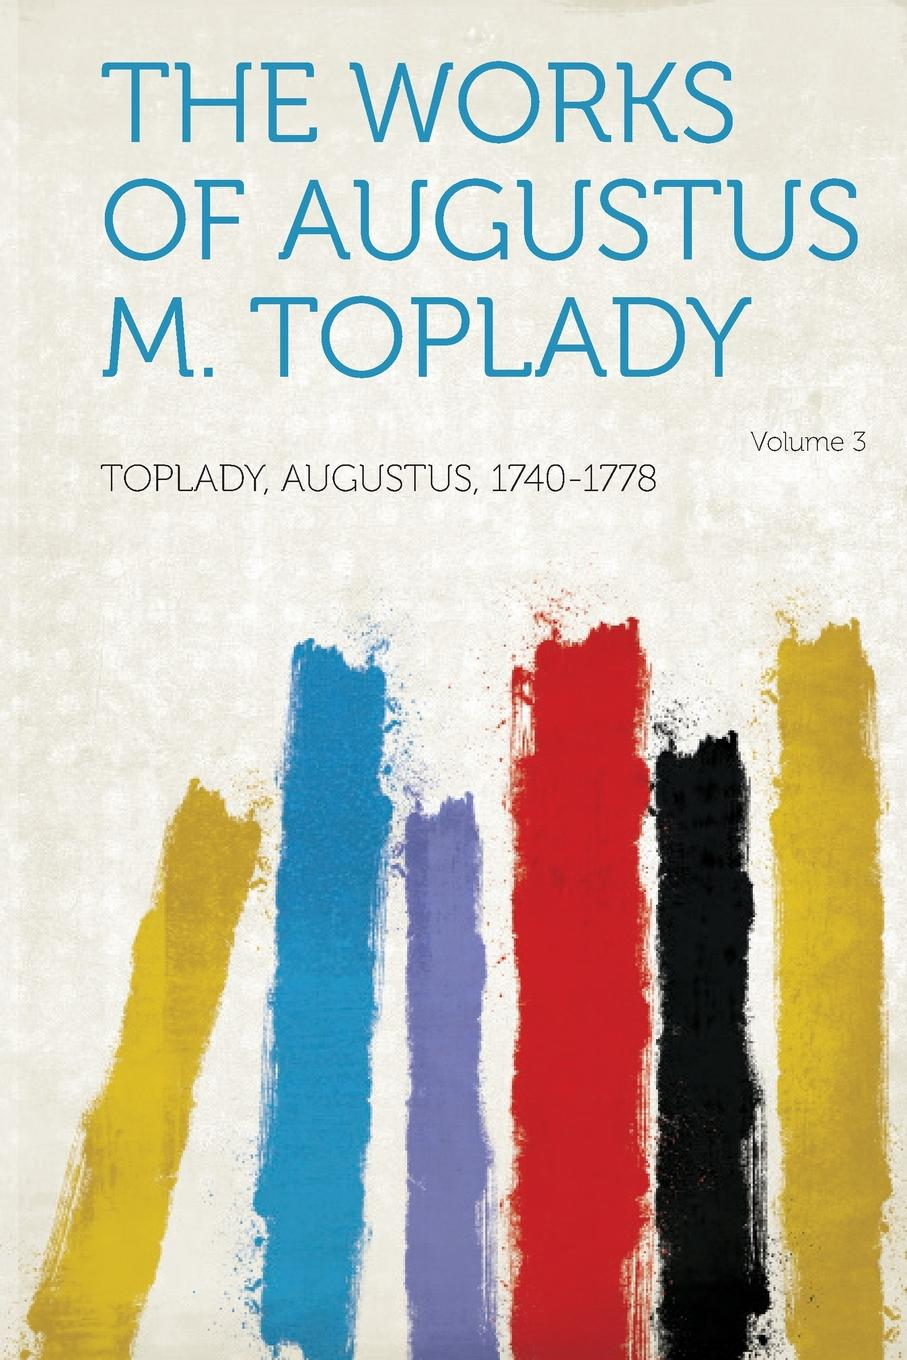 Toplady Augustus 1740-1778 The Works of Augustus M. Toplady Volume 3